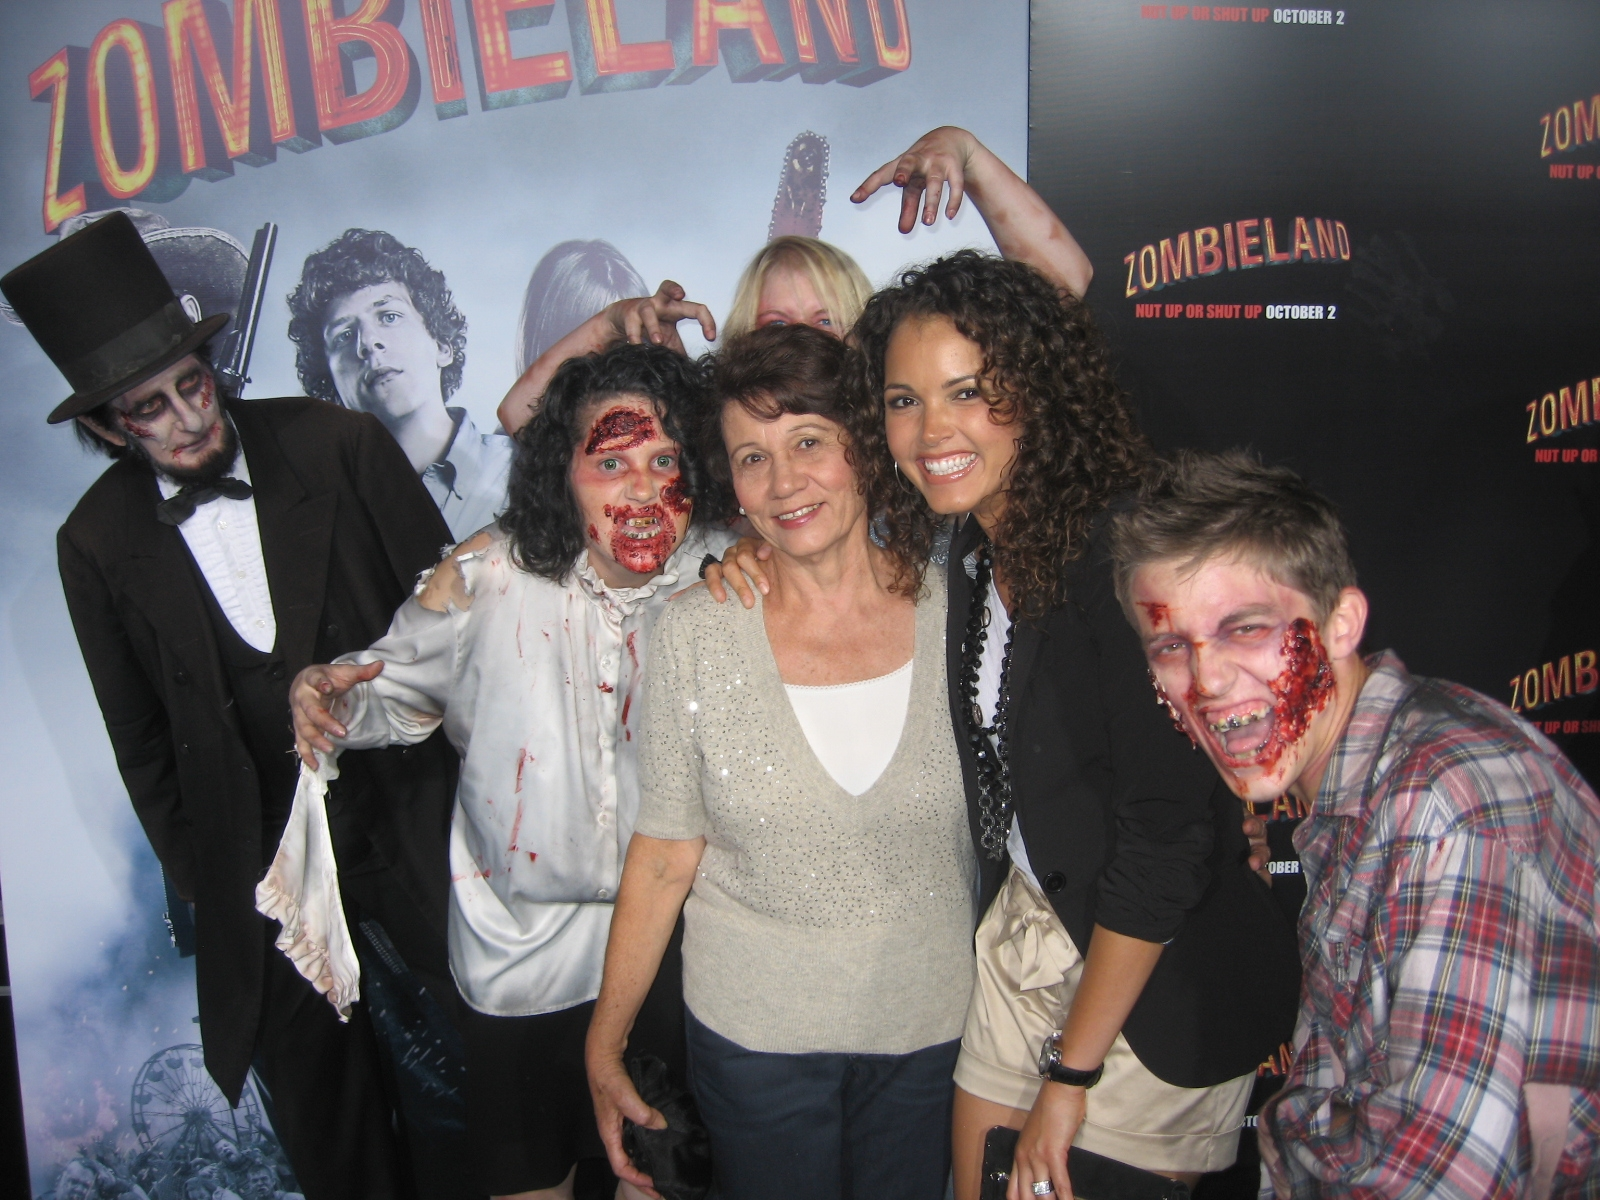 - I flew my mom out to Los Angeles and took her to the Zombieland premiere!